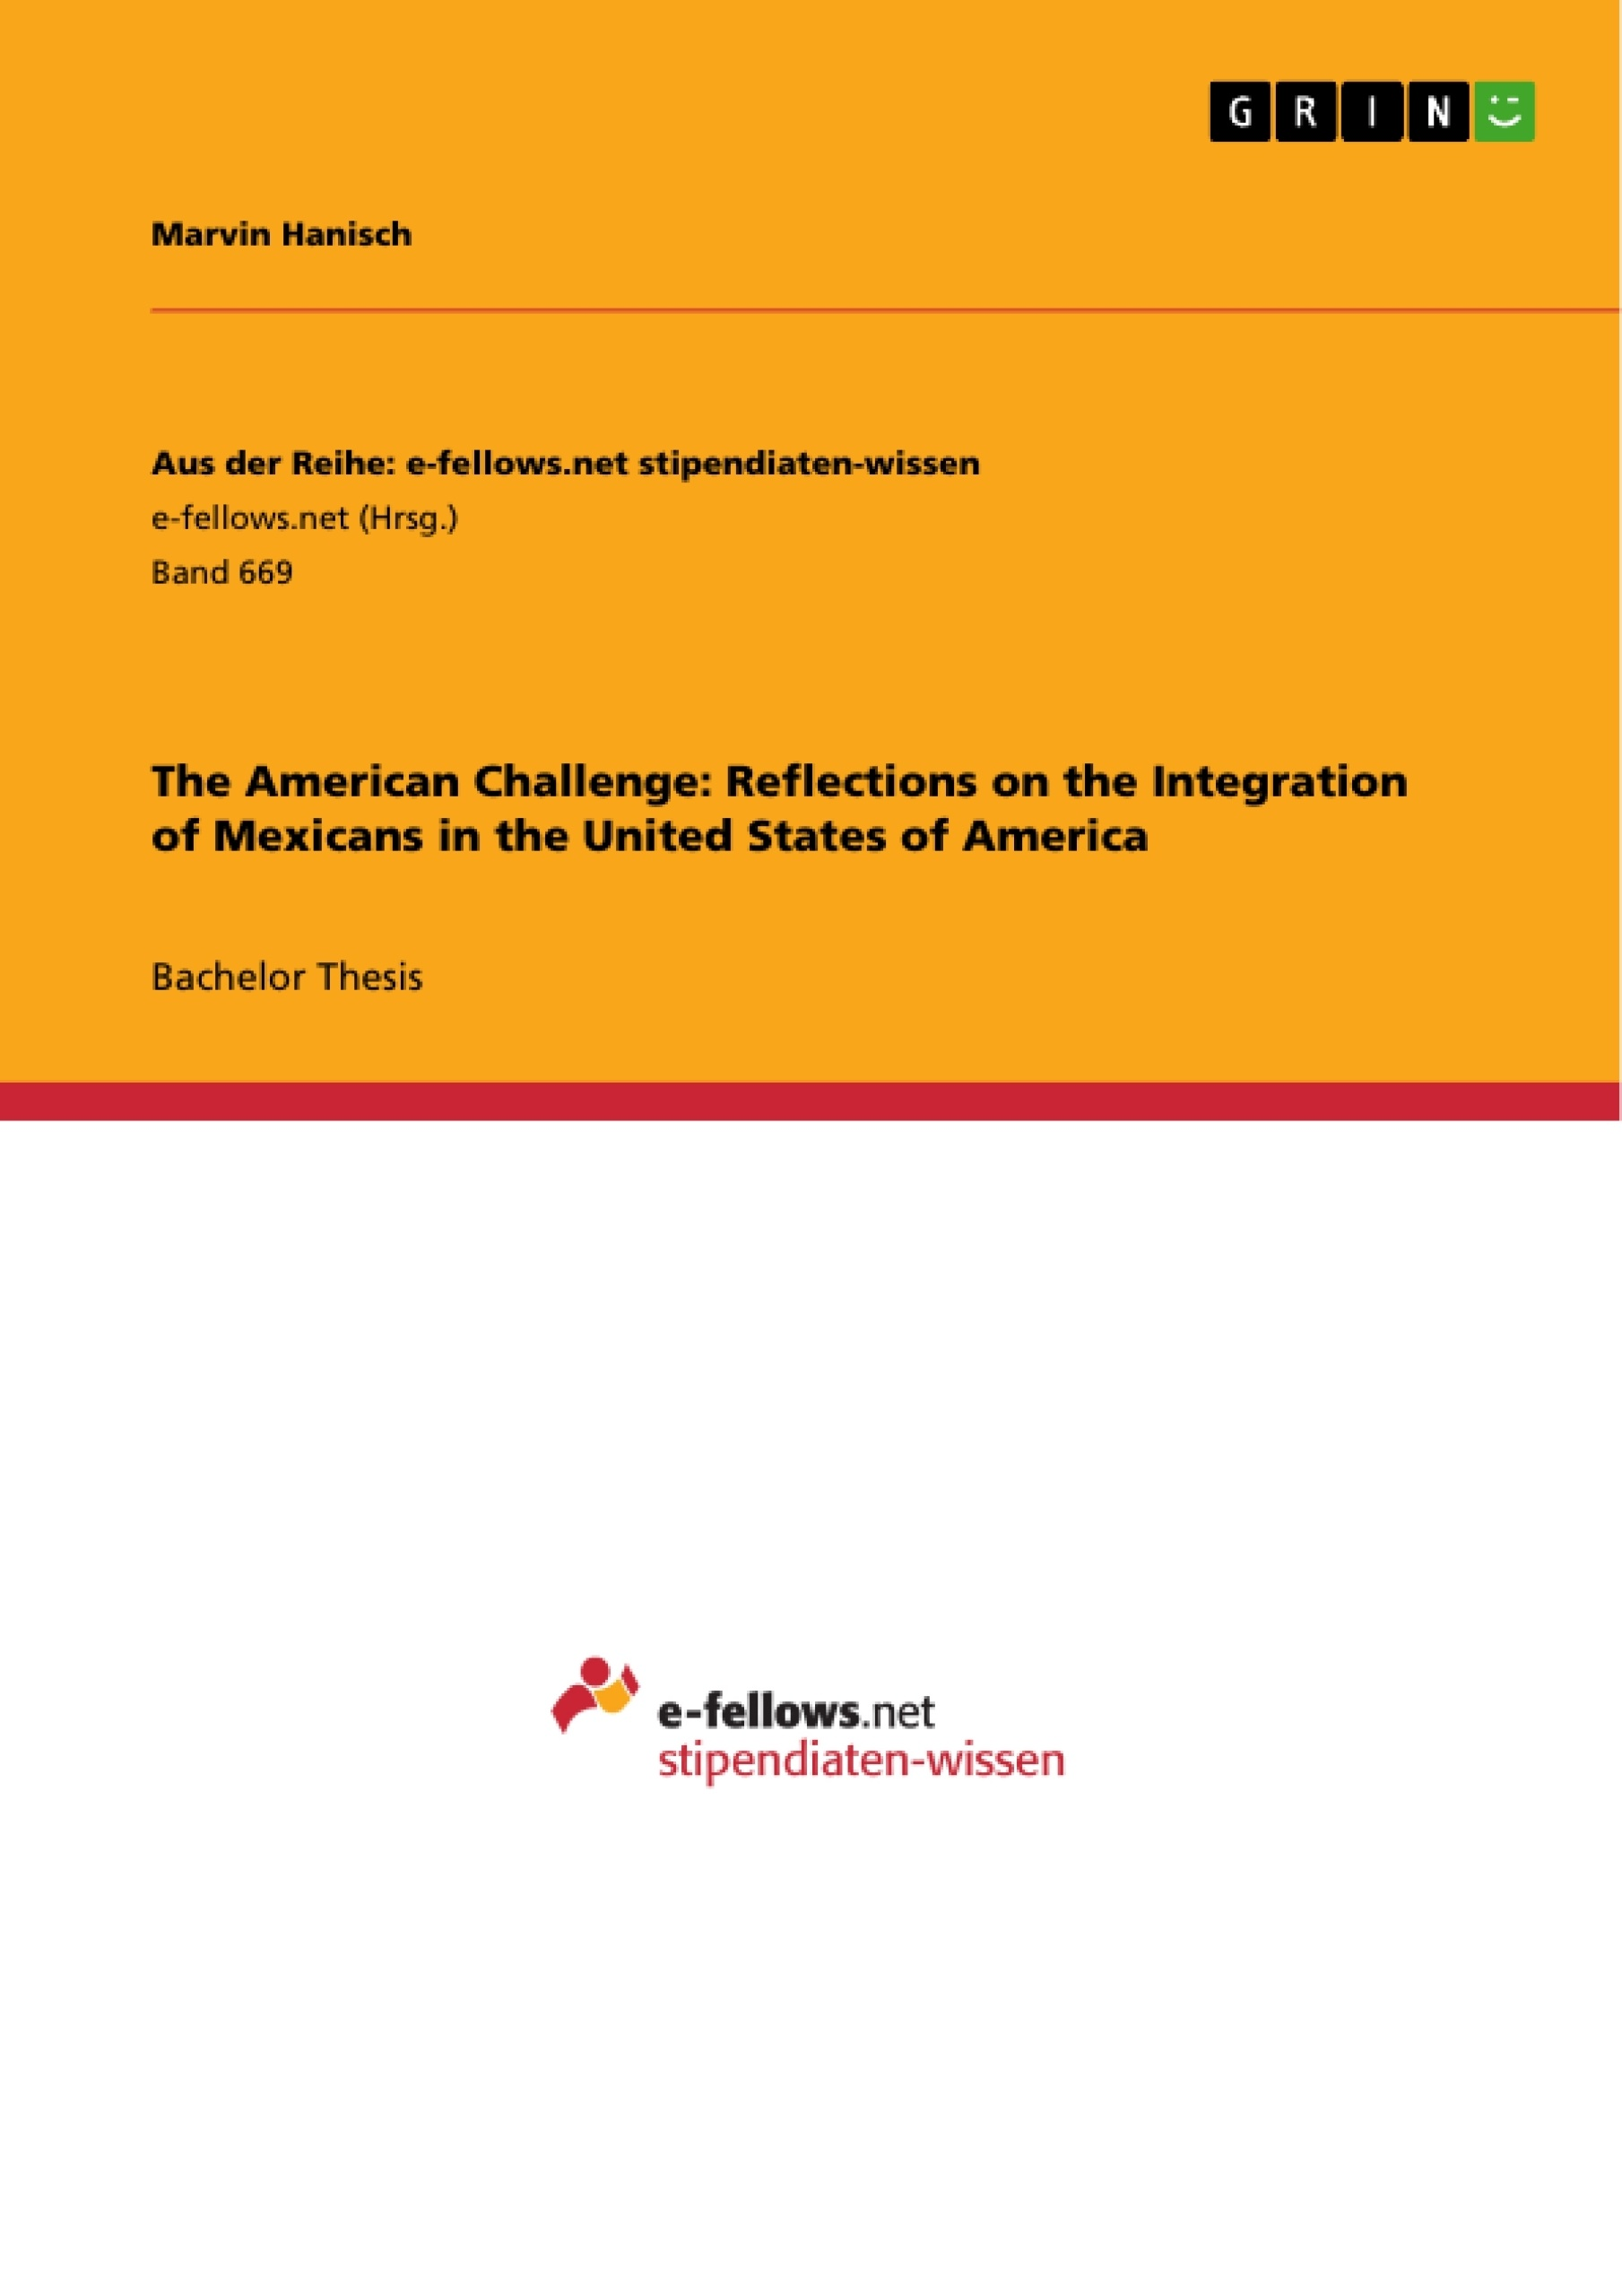 Title: The American Challenge: Reflections on the Integration of Mexicans in the United States of America